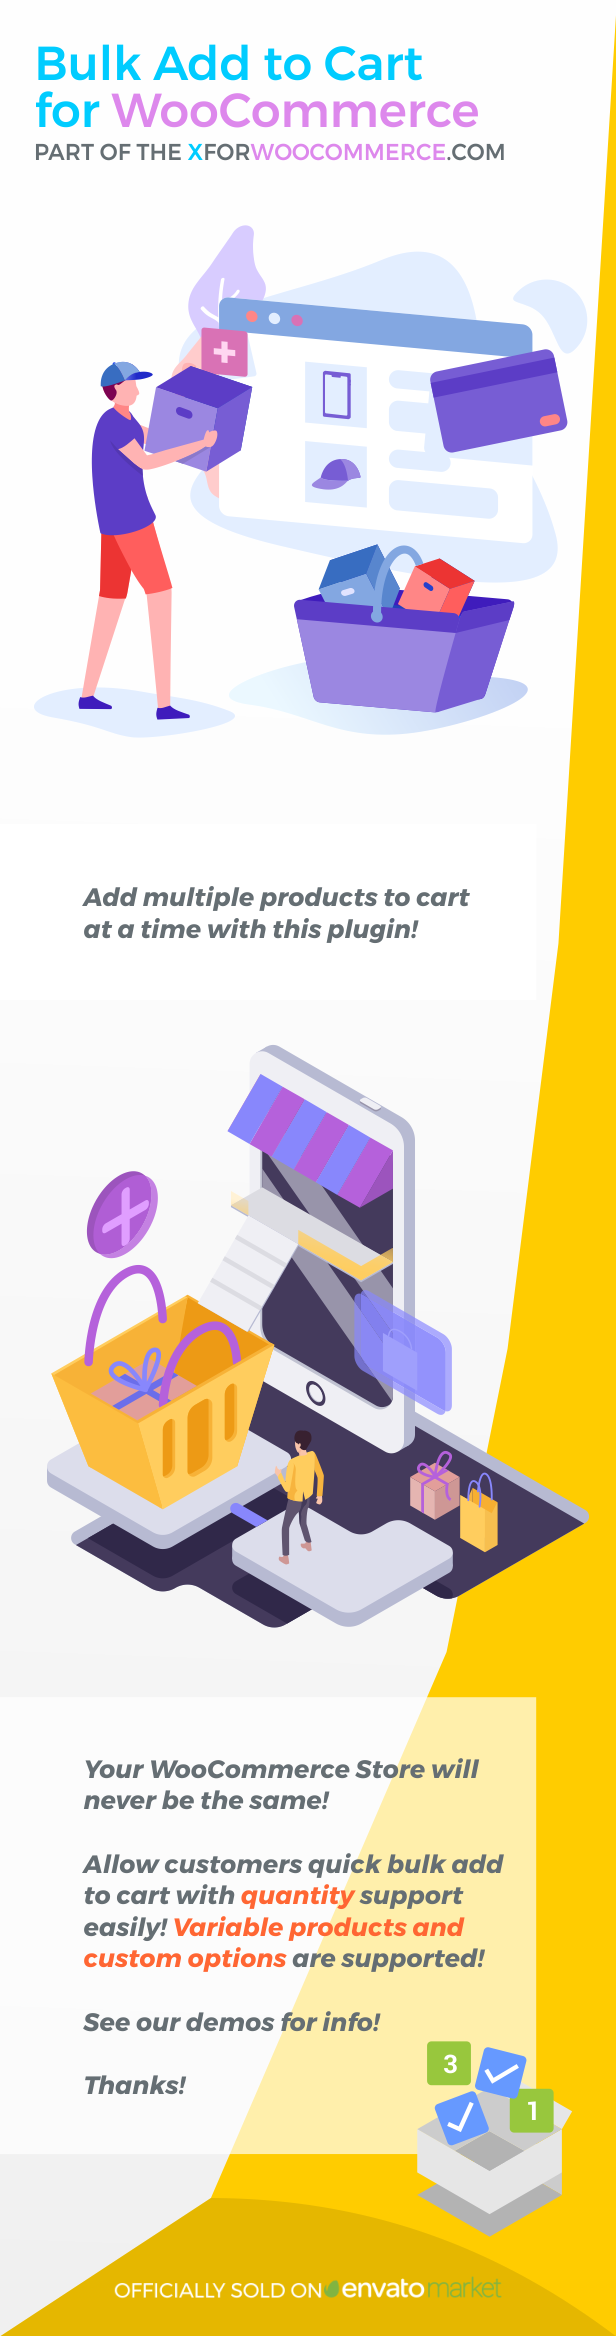 Bulk Add to Cart for WooCommerce - 2